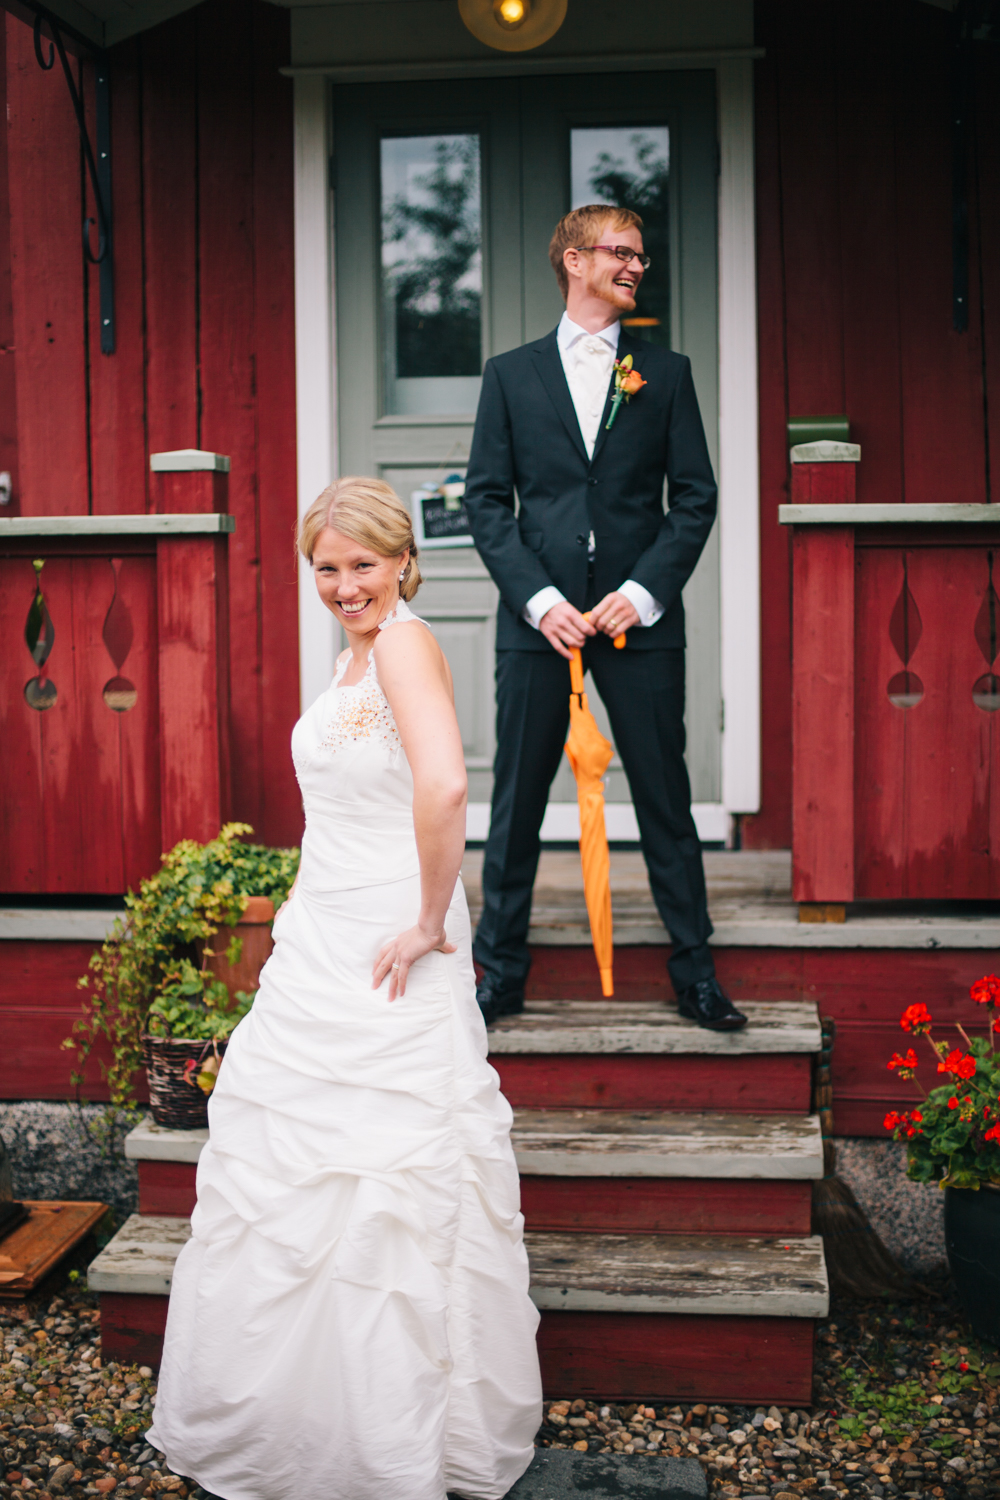 wedding_stina_johan-35.jpg